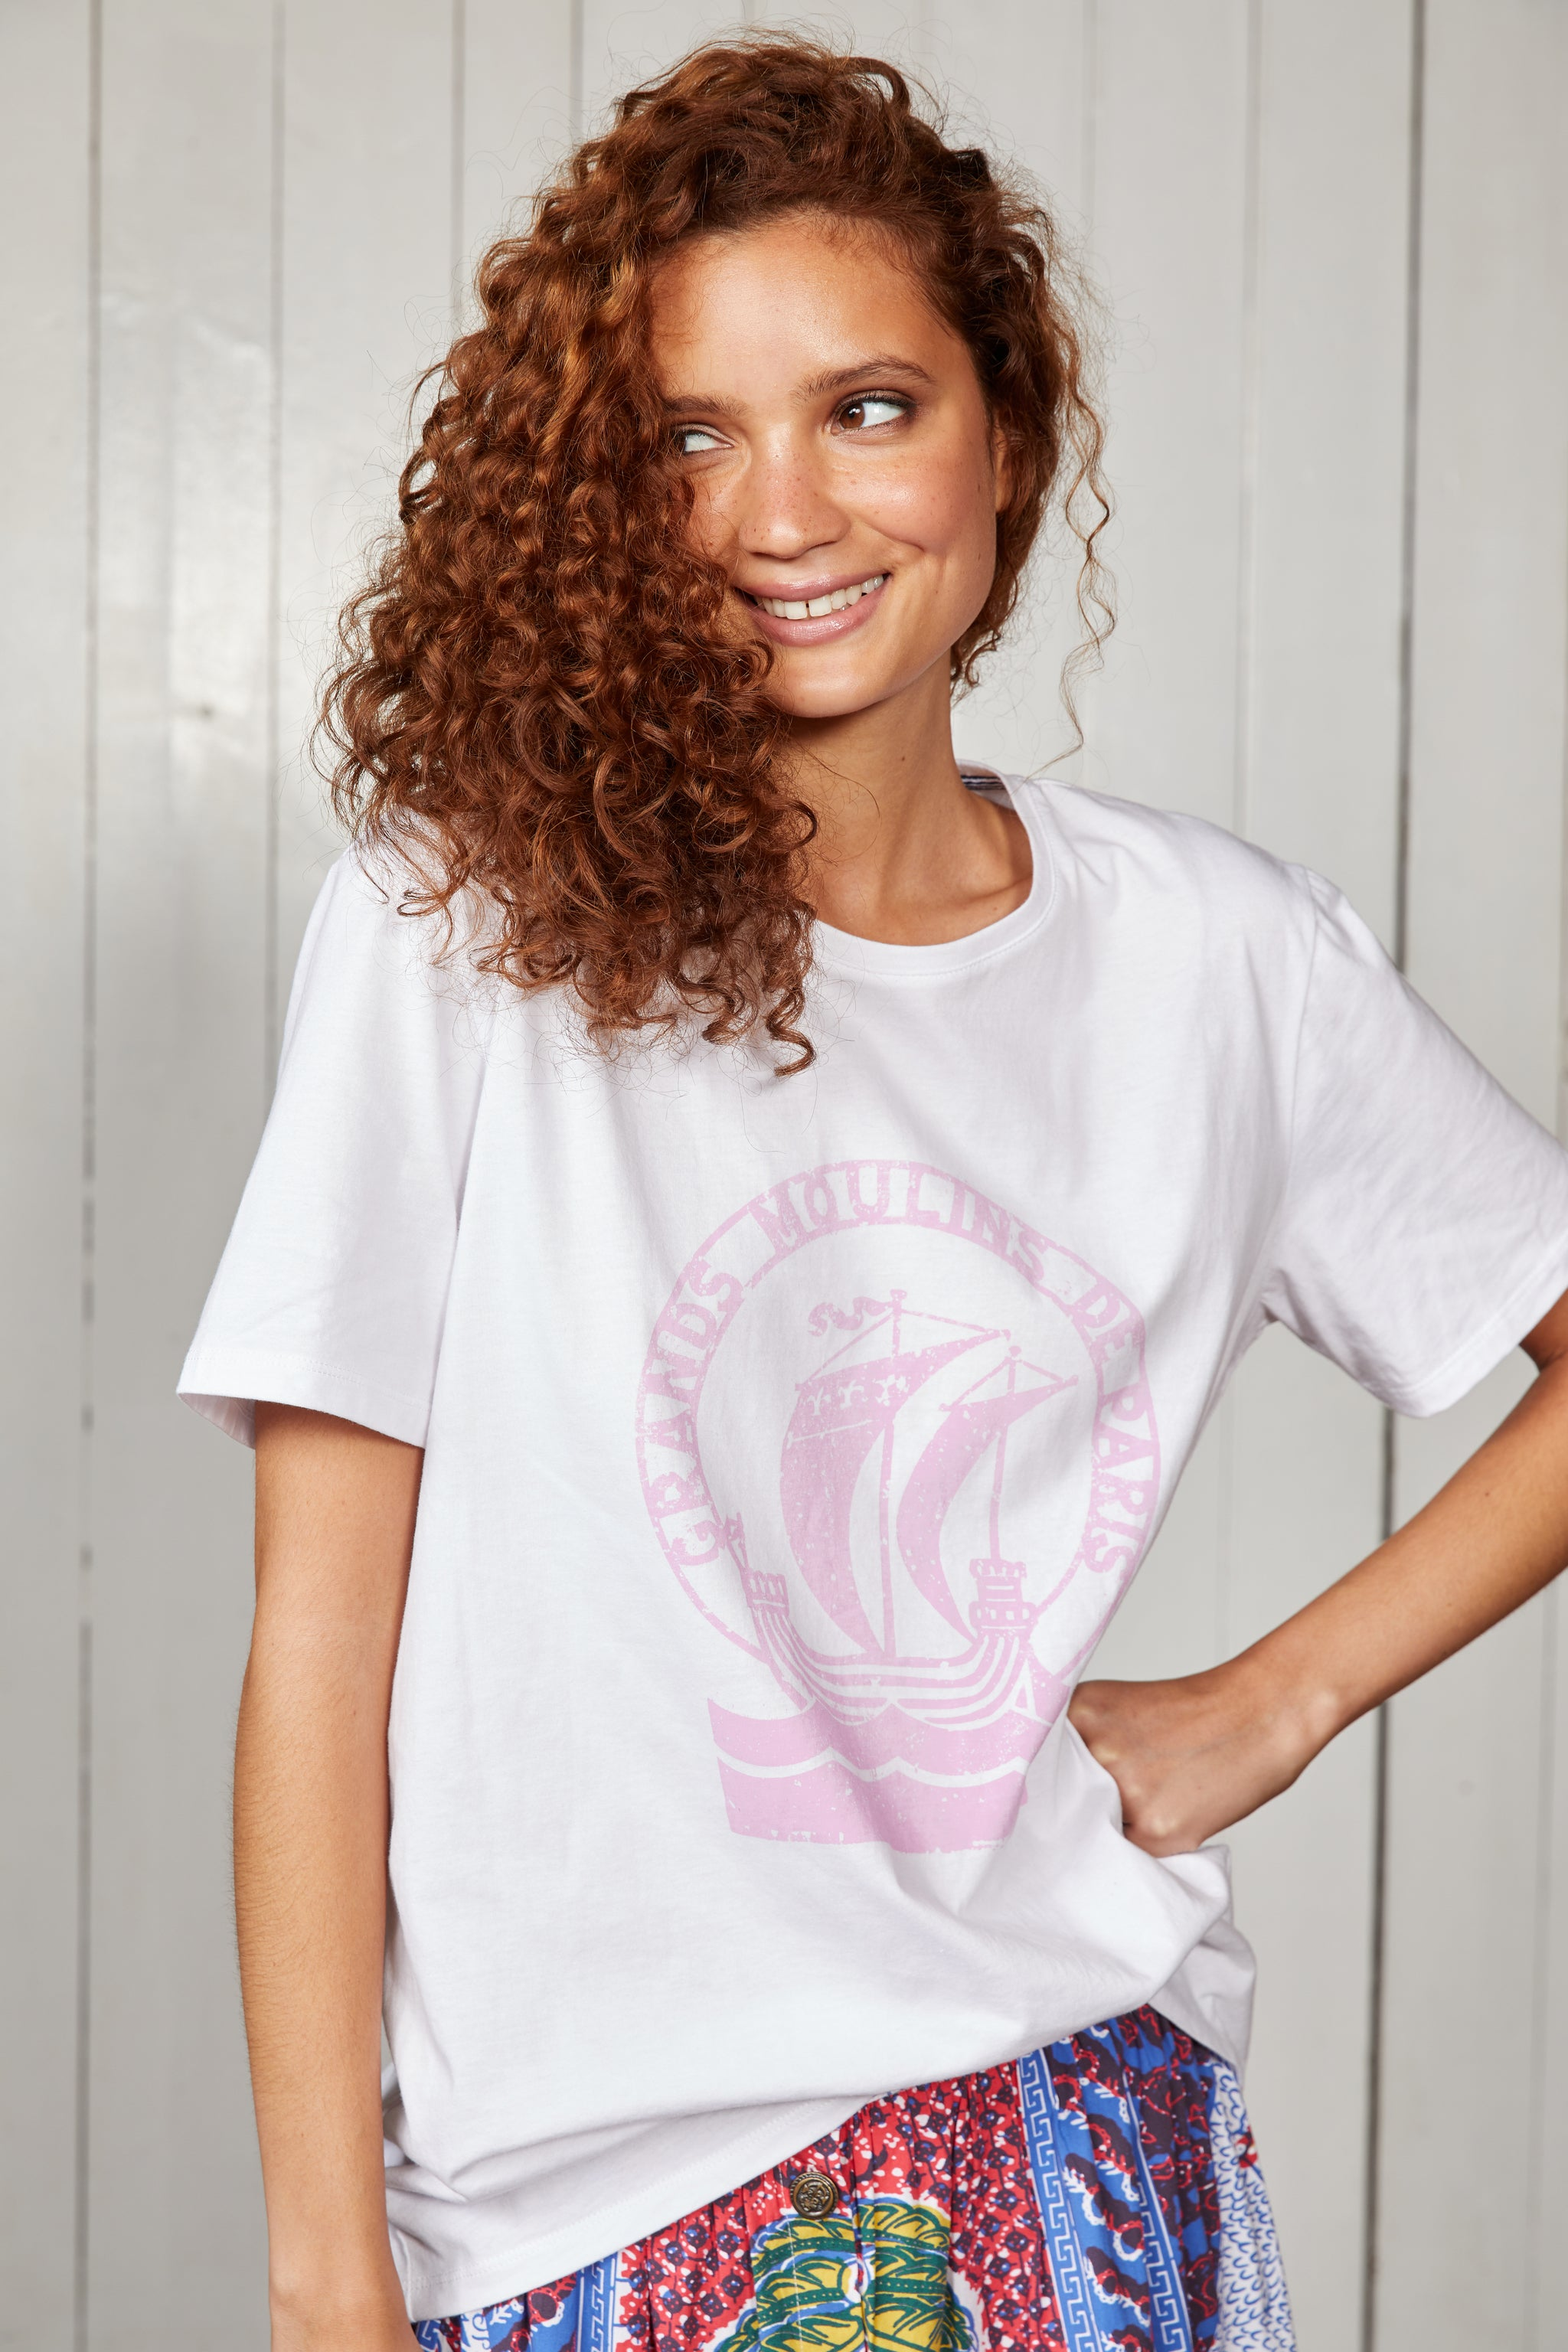 Binny Ladies Relaxed Fit, Queen Anne's Revenge White Cotton Jersey T-shirt with Crew Neck and Pink Print